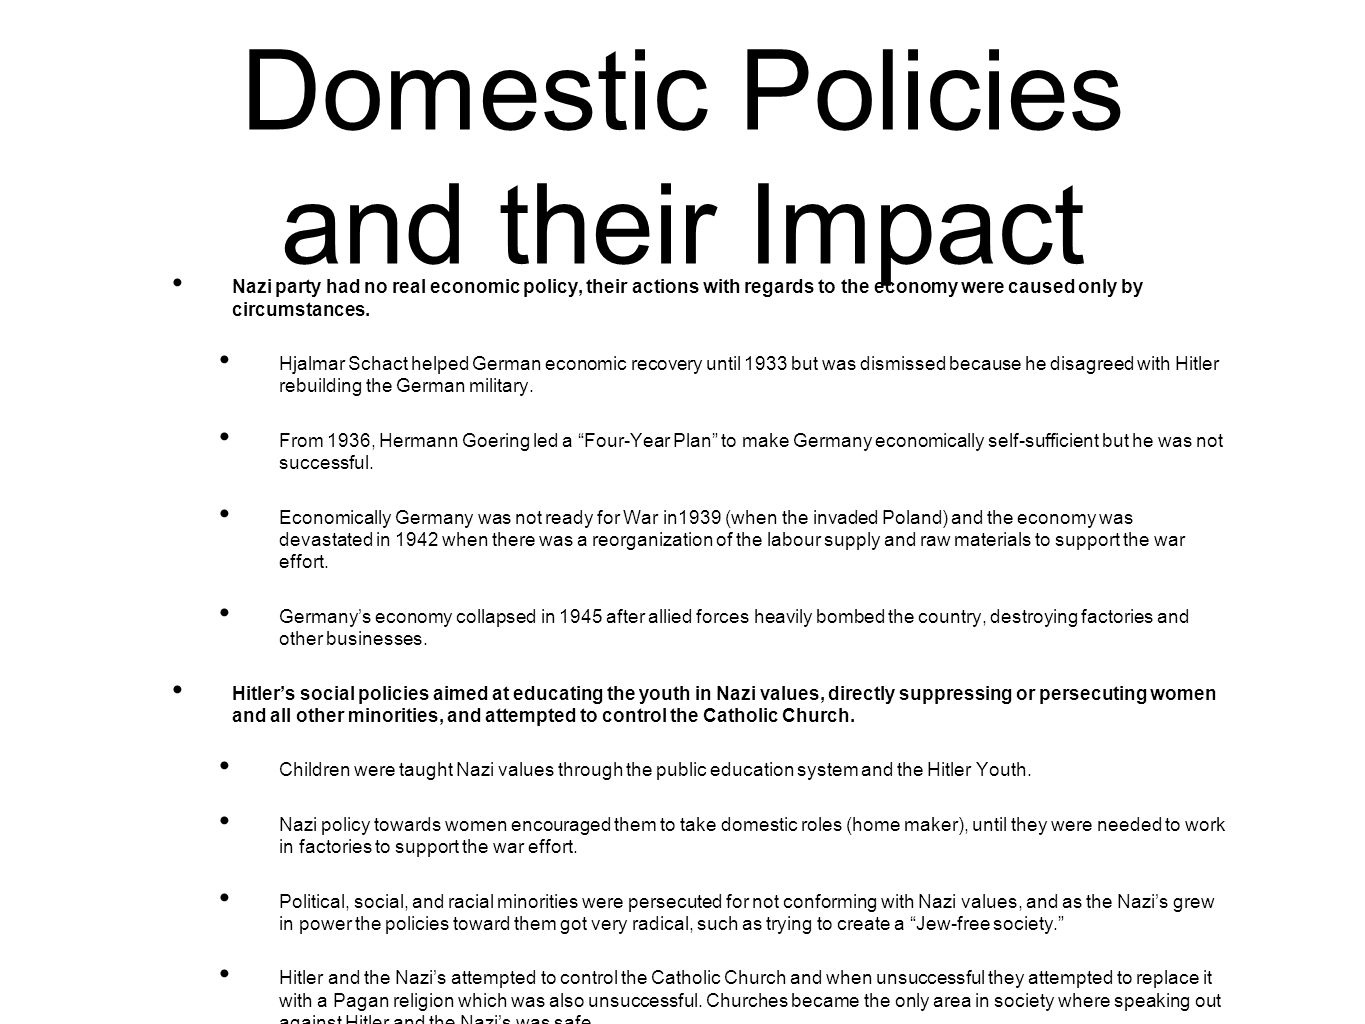 examination question on the domestic policies of the nazi state essay Bridges and roads - what transportation-related developments came from wartime or post-war policies domestic violence - was there grace essay.